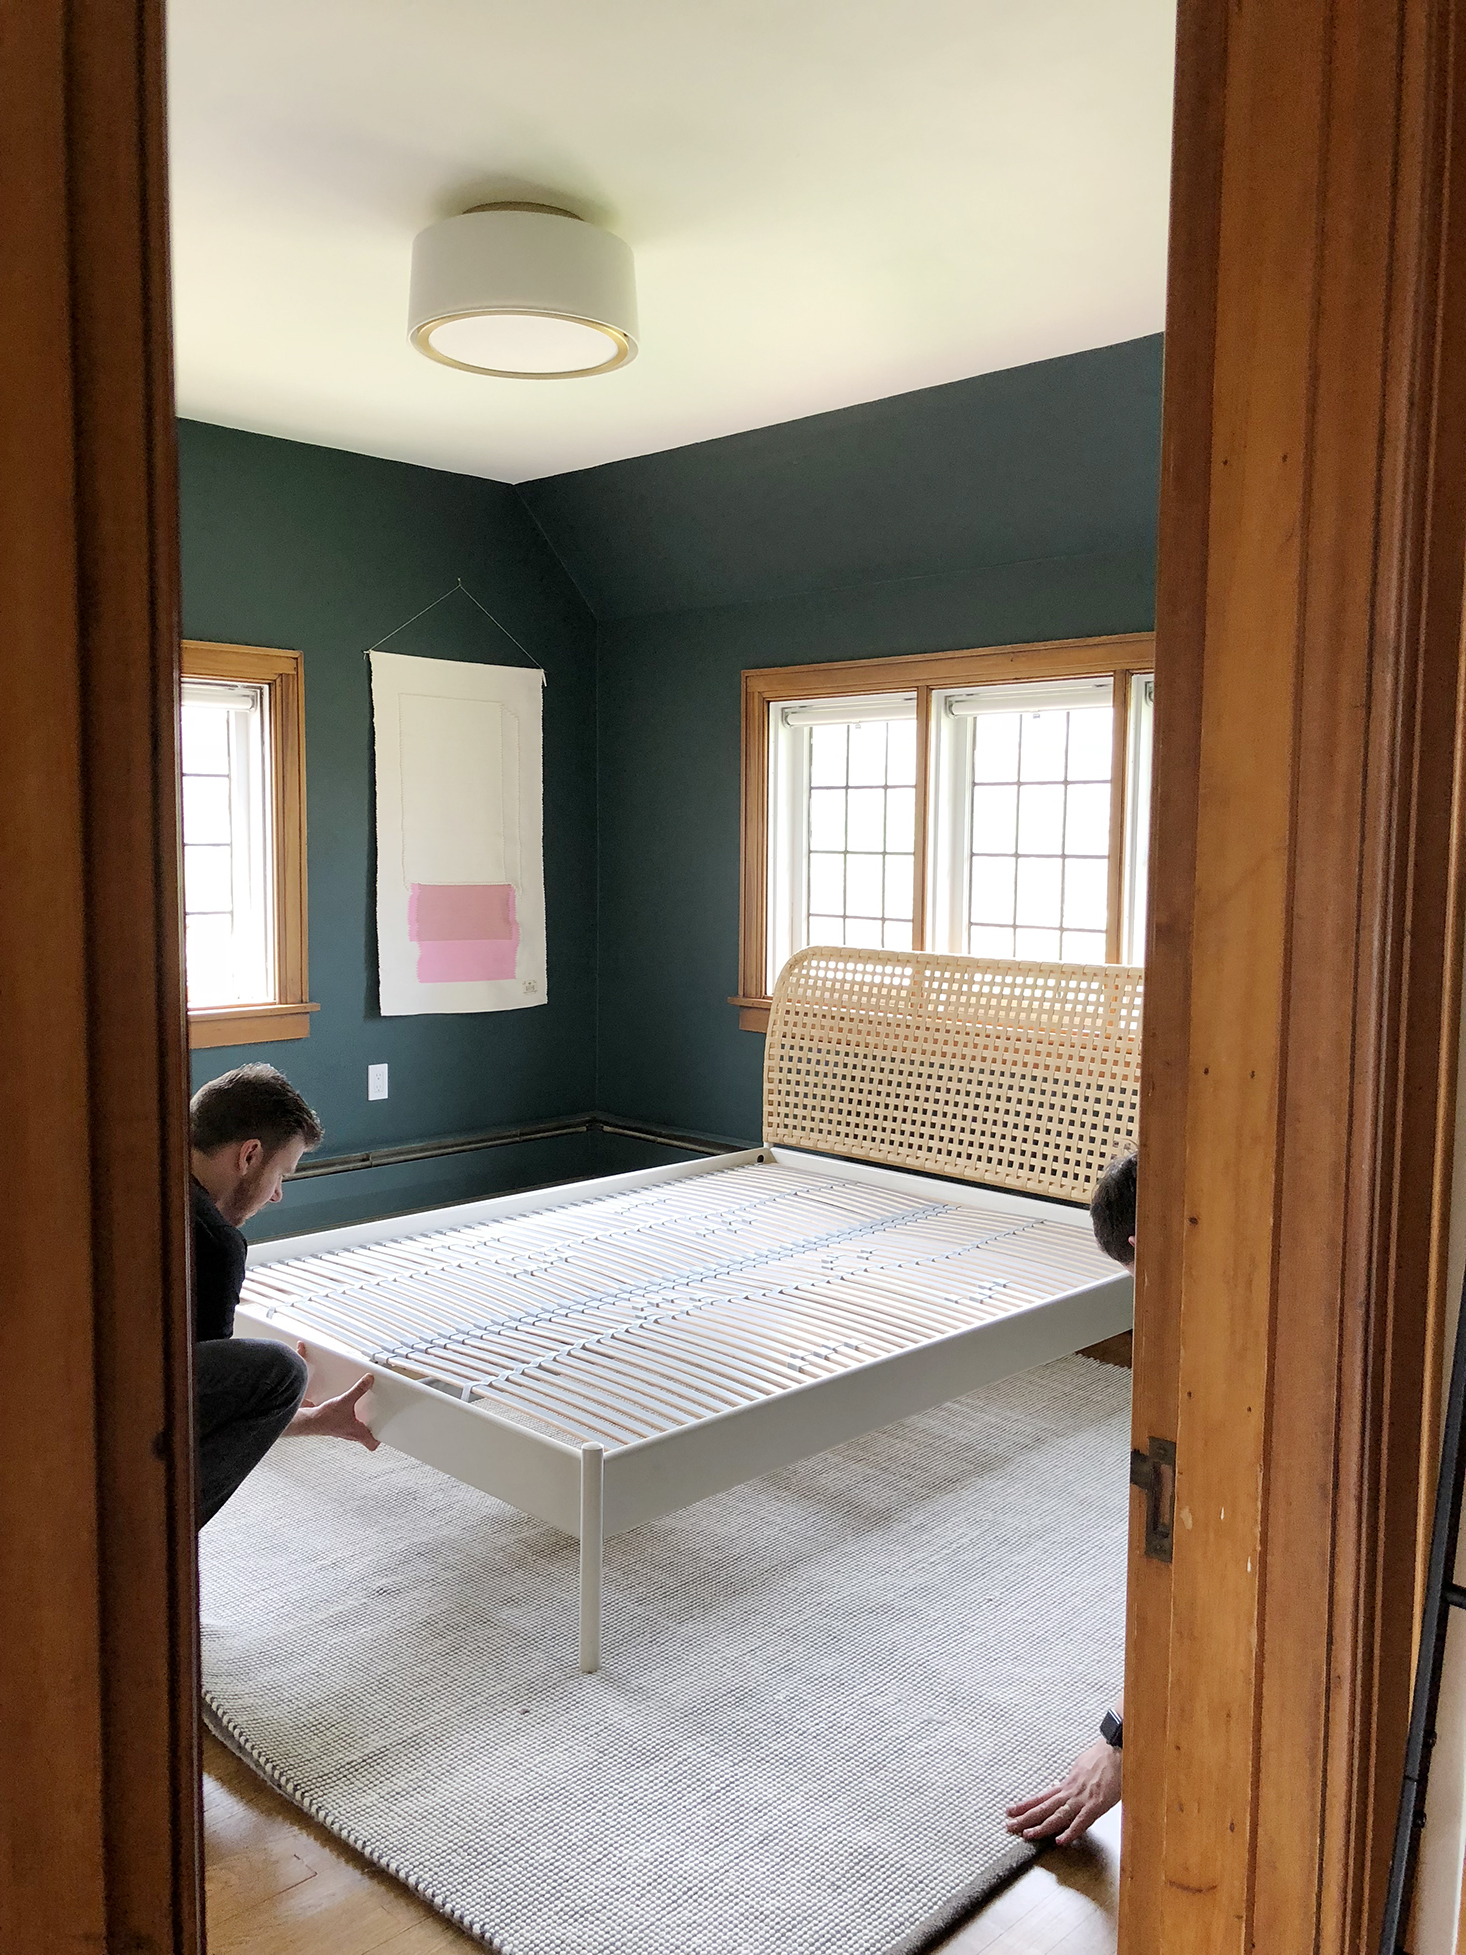 One Room Challenge Week 4 putting the bed in place